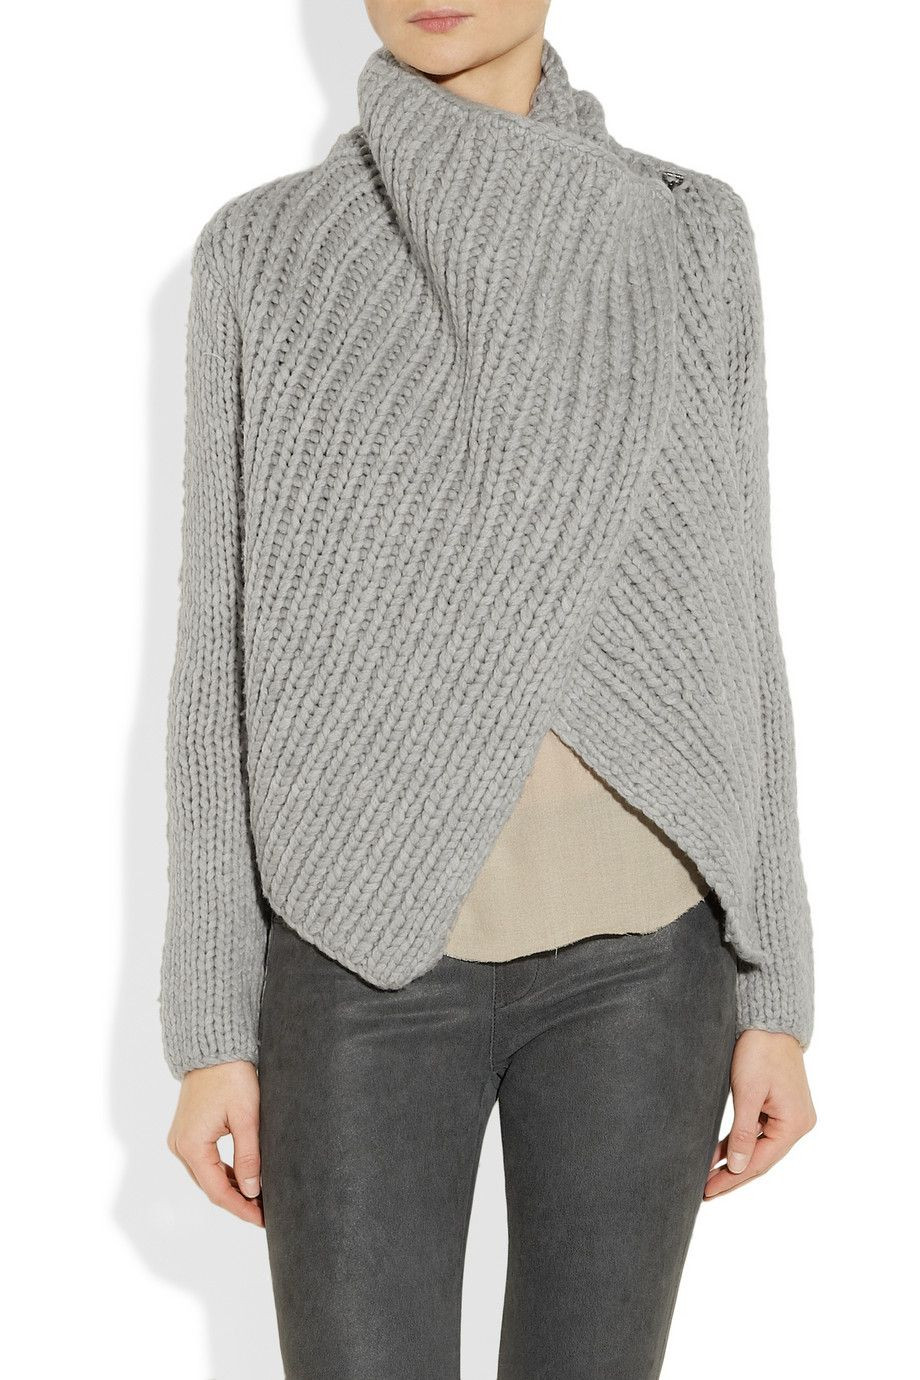 Awesome Helmut Lang Bulky Rib Knit Sweater Love the Easy Wrap Easy Knit Sweater Of Brilliant 50 Images Easy Knit Sweater